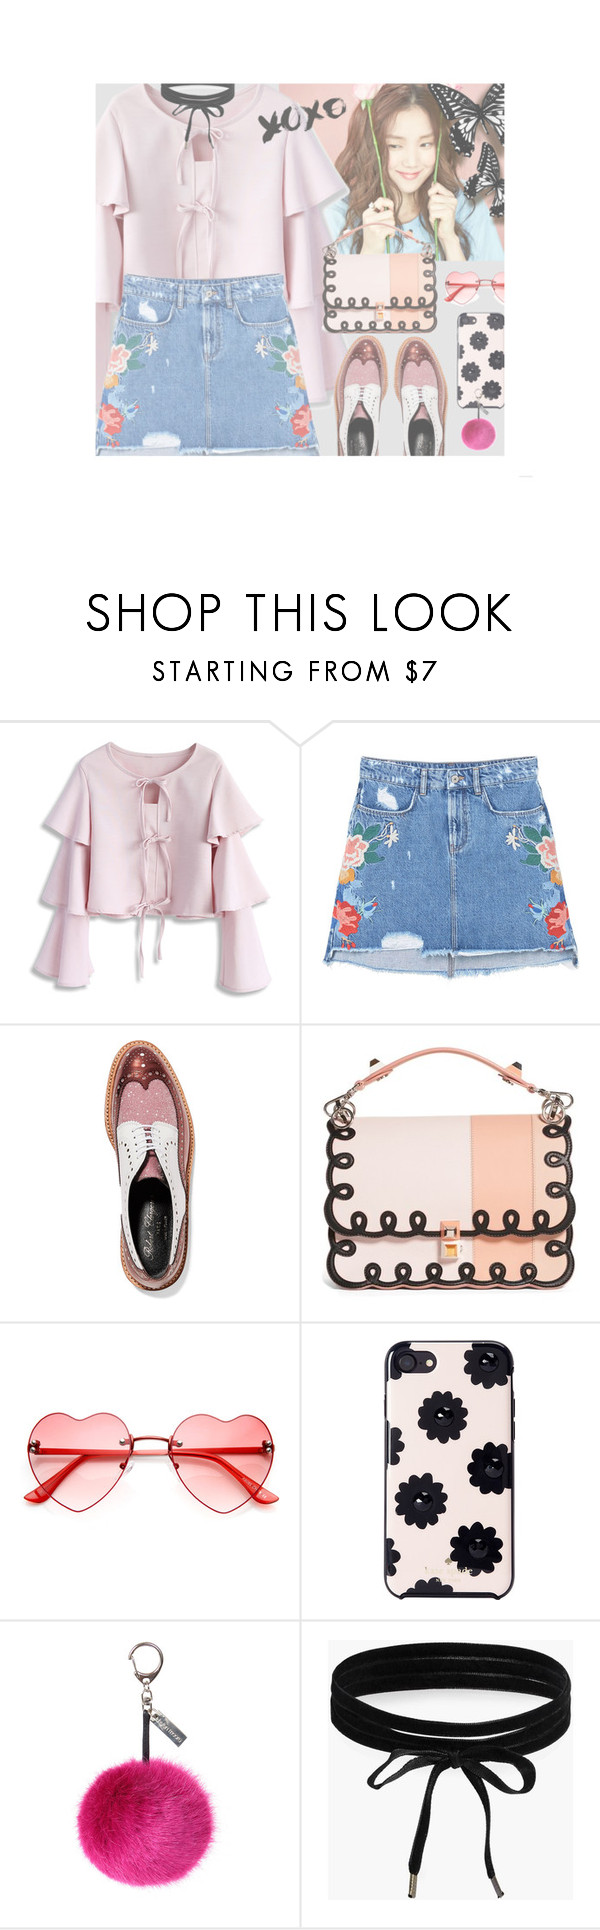 """""""428"""" by niji-niji ❤ liked on Polyvore featuring Chicwish, MANGO, Robert Clergerie, Fendi, Kate Spade, Helen Moore and Boohoo"""